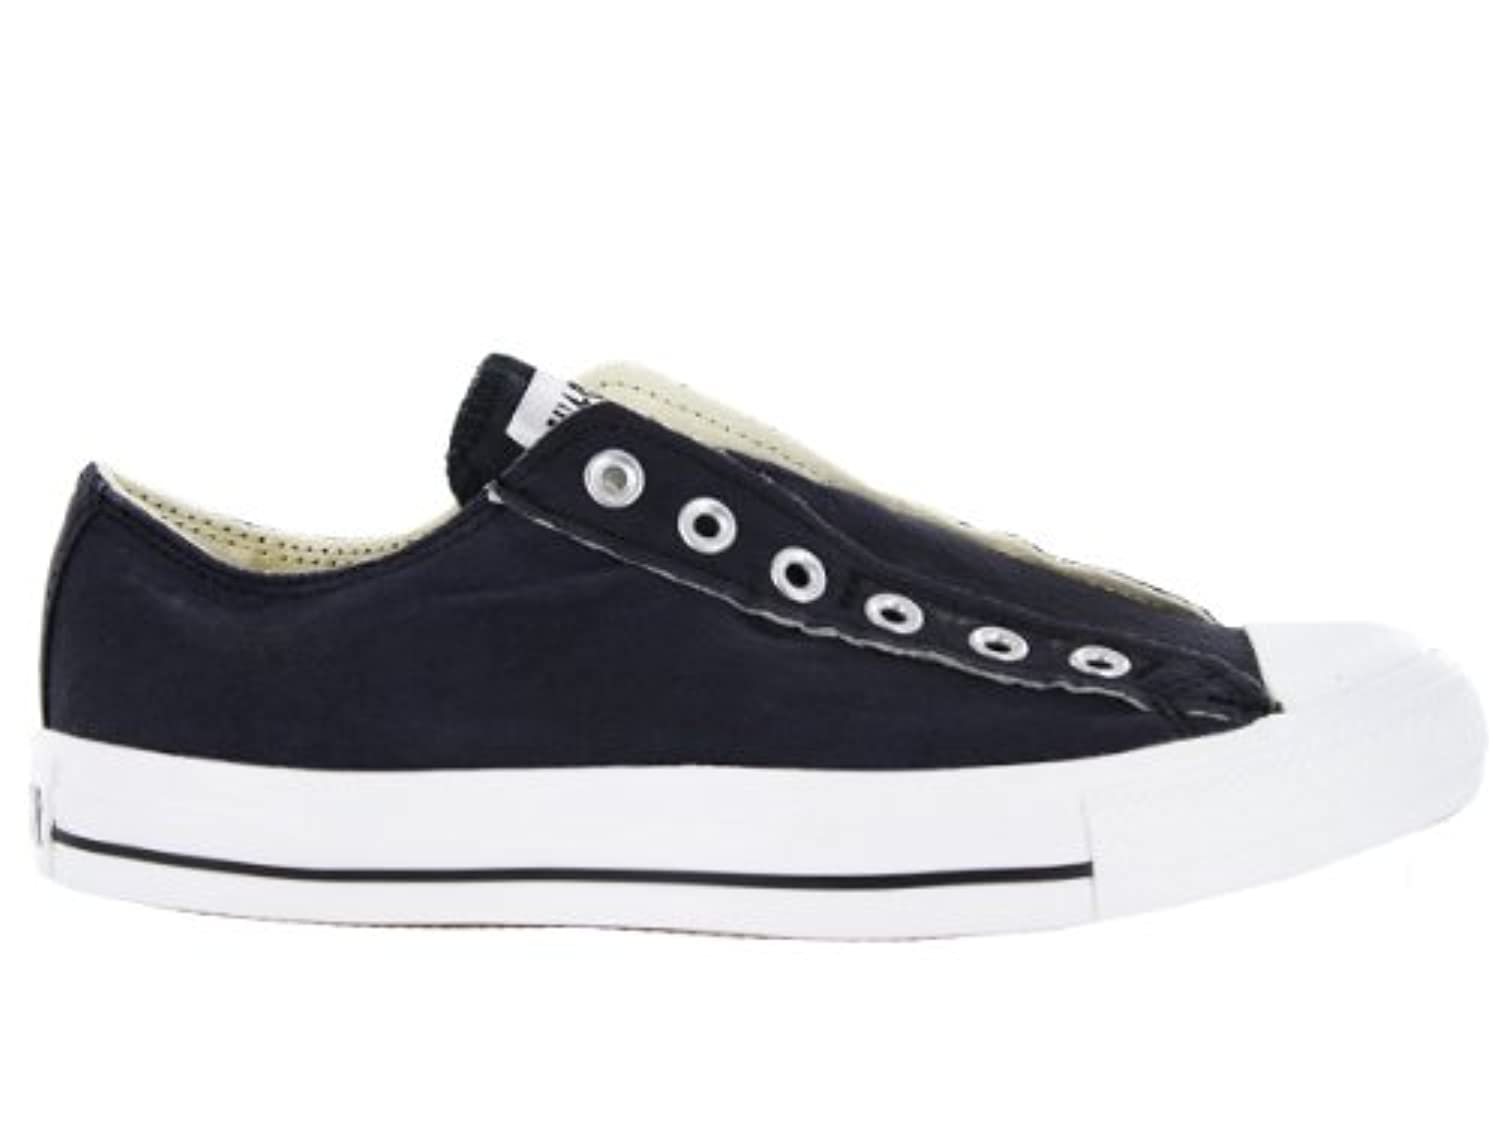 Converse Chuck Taylor Slip On Shoes in Black (IT366), Size: 6.5 D(M) US Mens / 8.5 B(M) US Womens, Color: Black